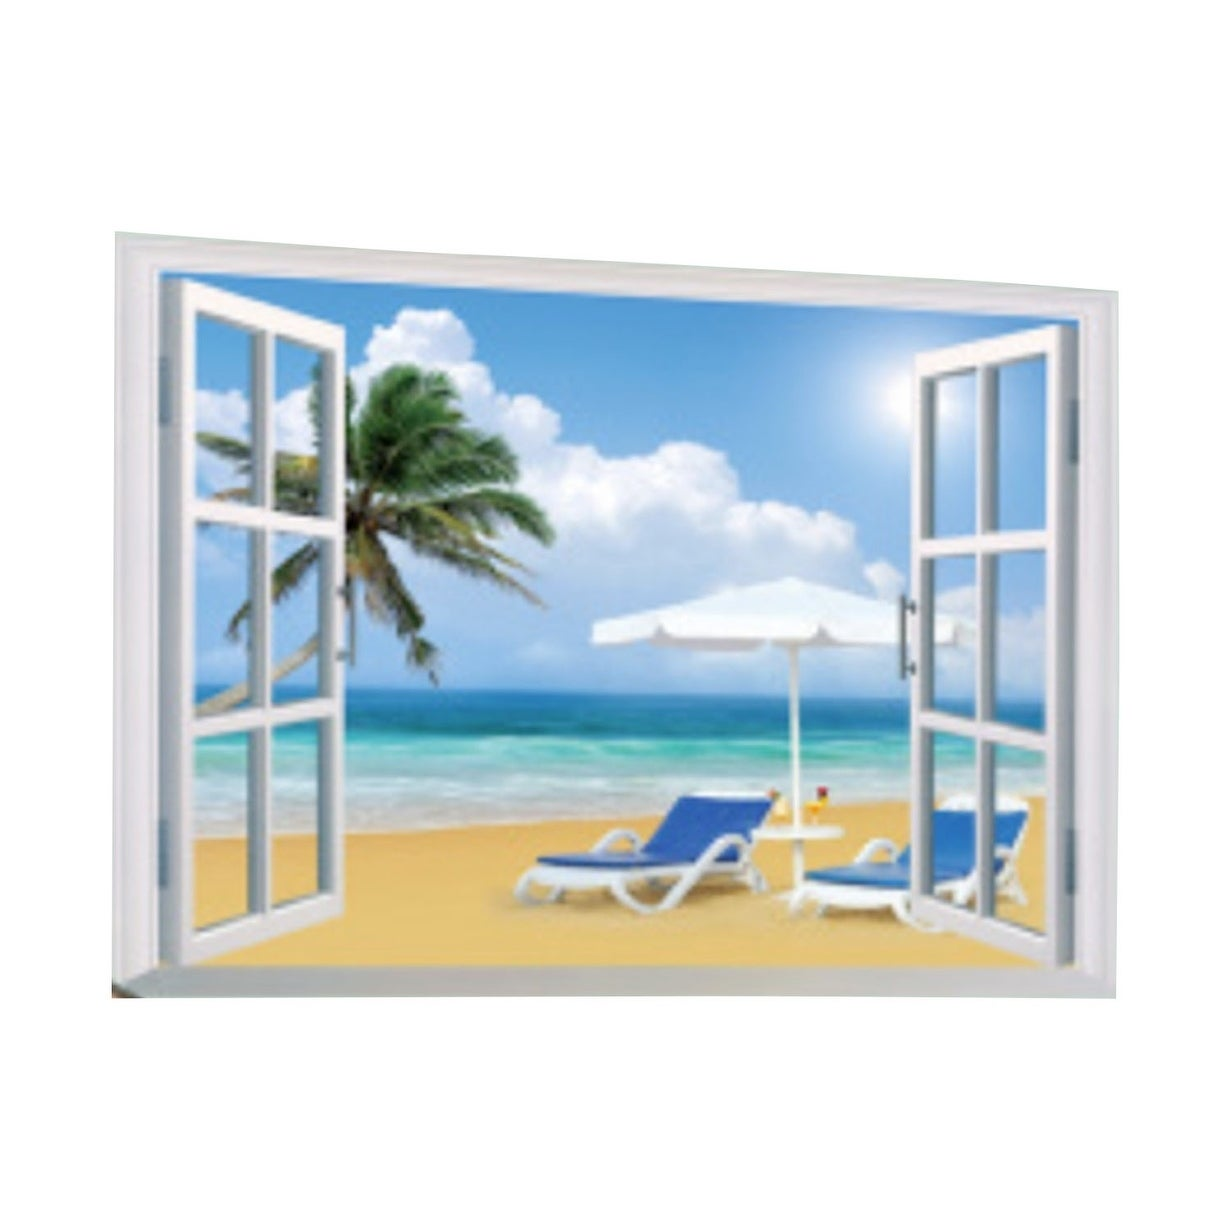 Creative Motion Peel And Stick Diy Decorative Wall Decal With Window View Ocean Beach Palm Tree Beach Chair Fluffy Clouds Sky Overstock 24127459